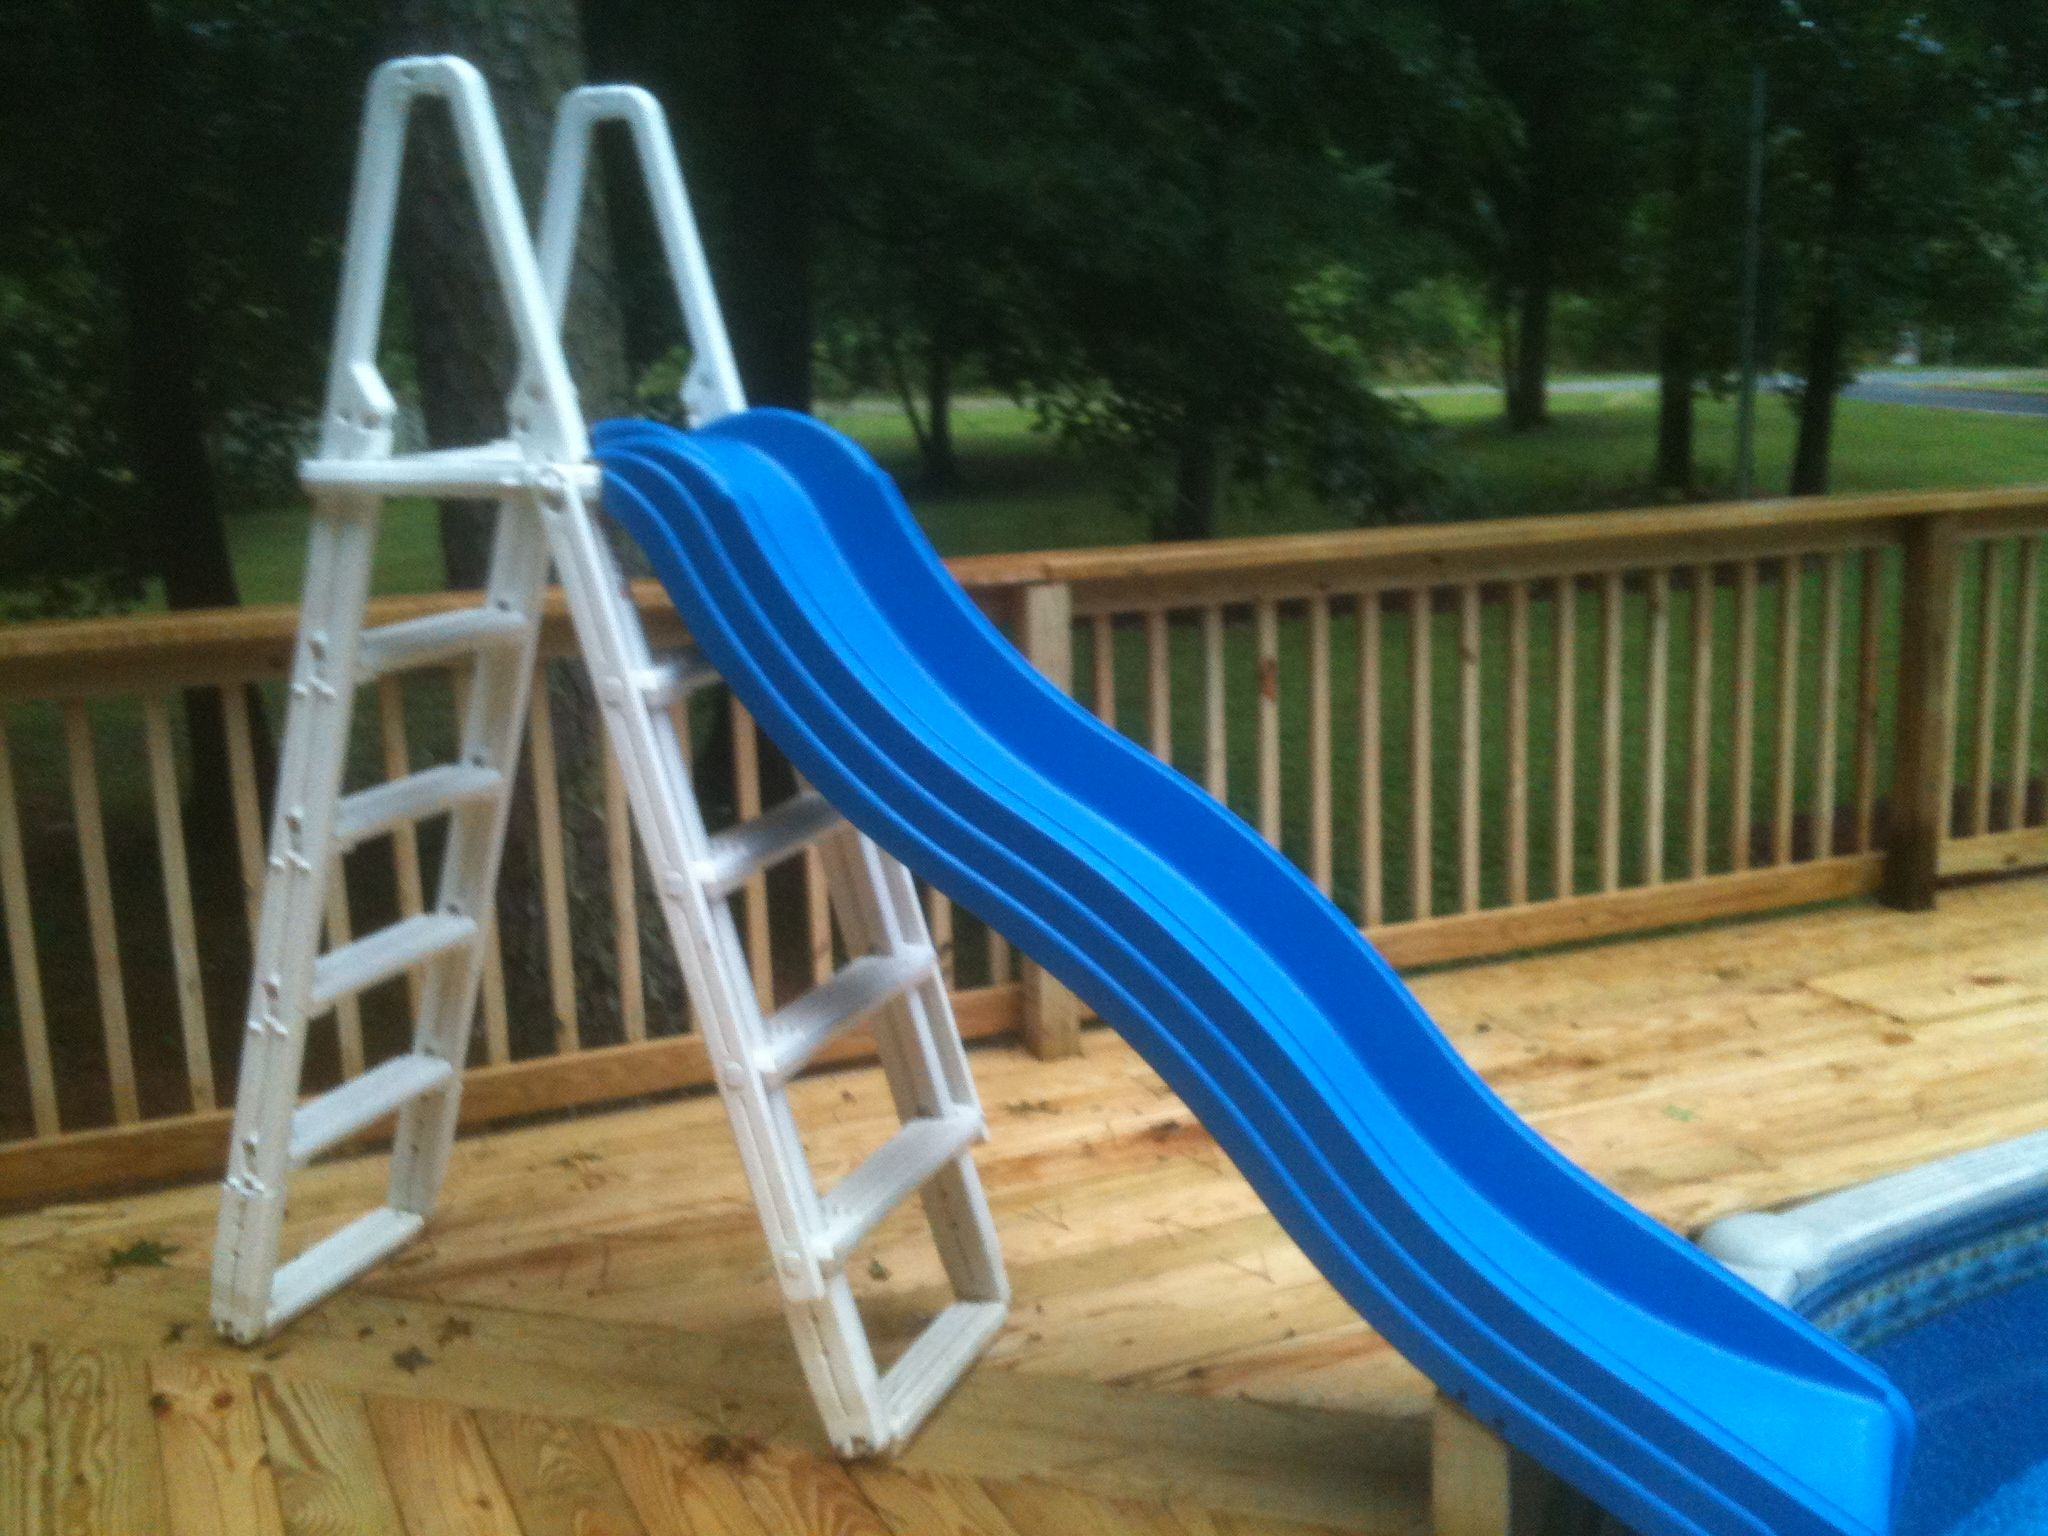 I did this over the weekend. My wife found the slide at a